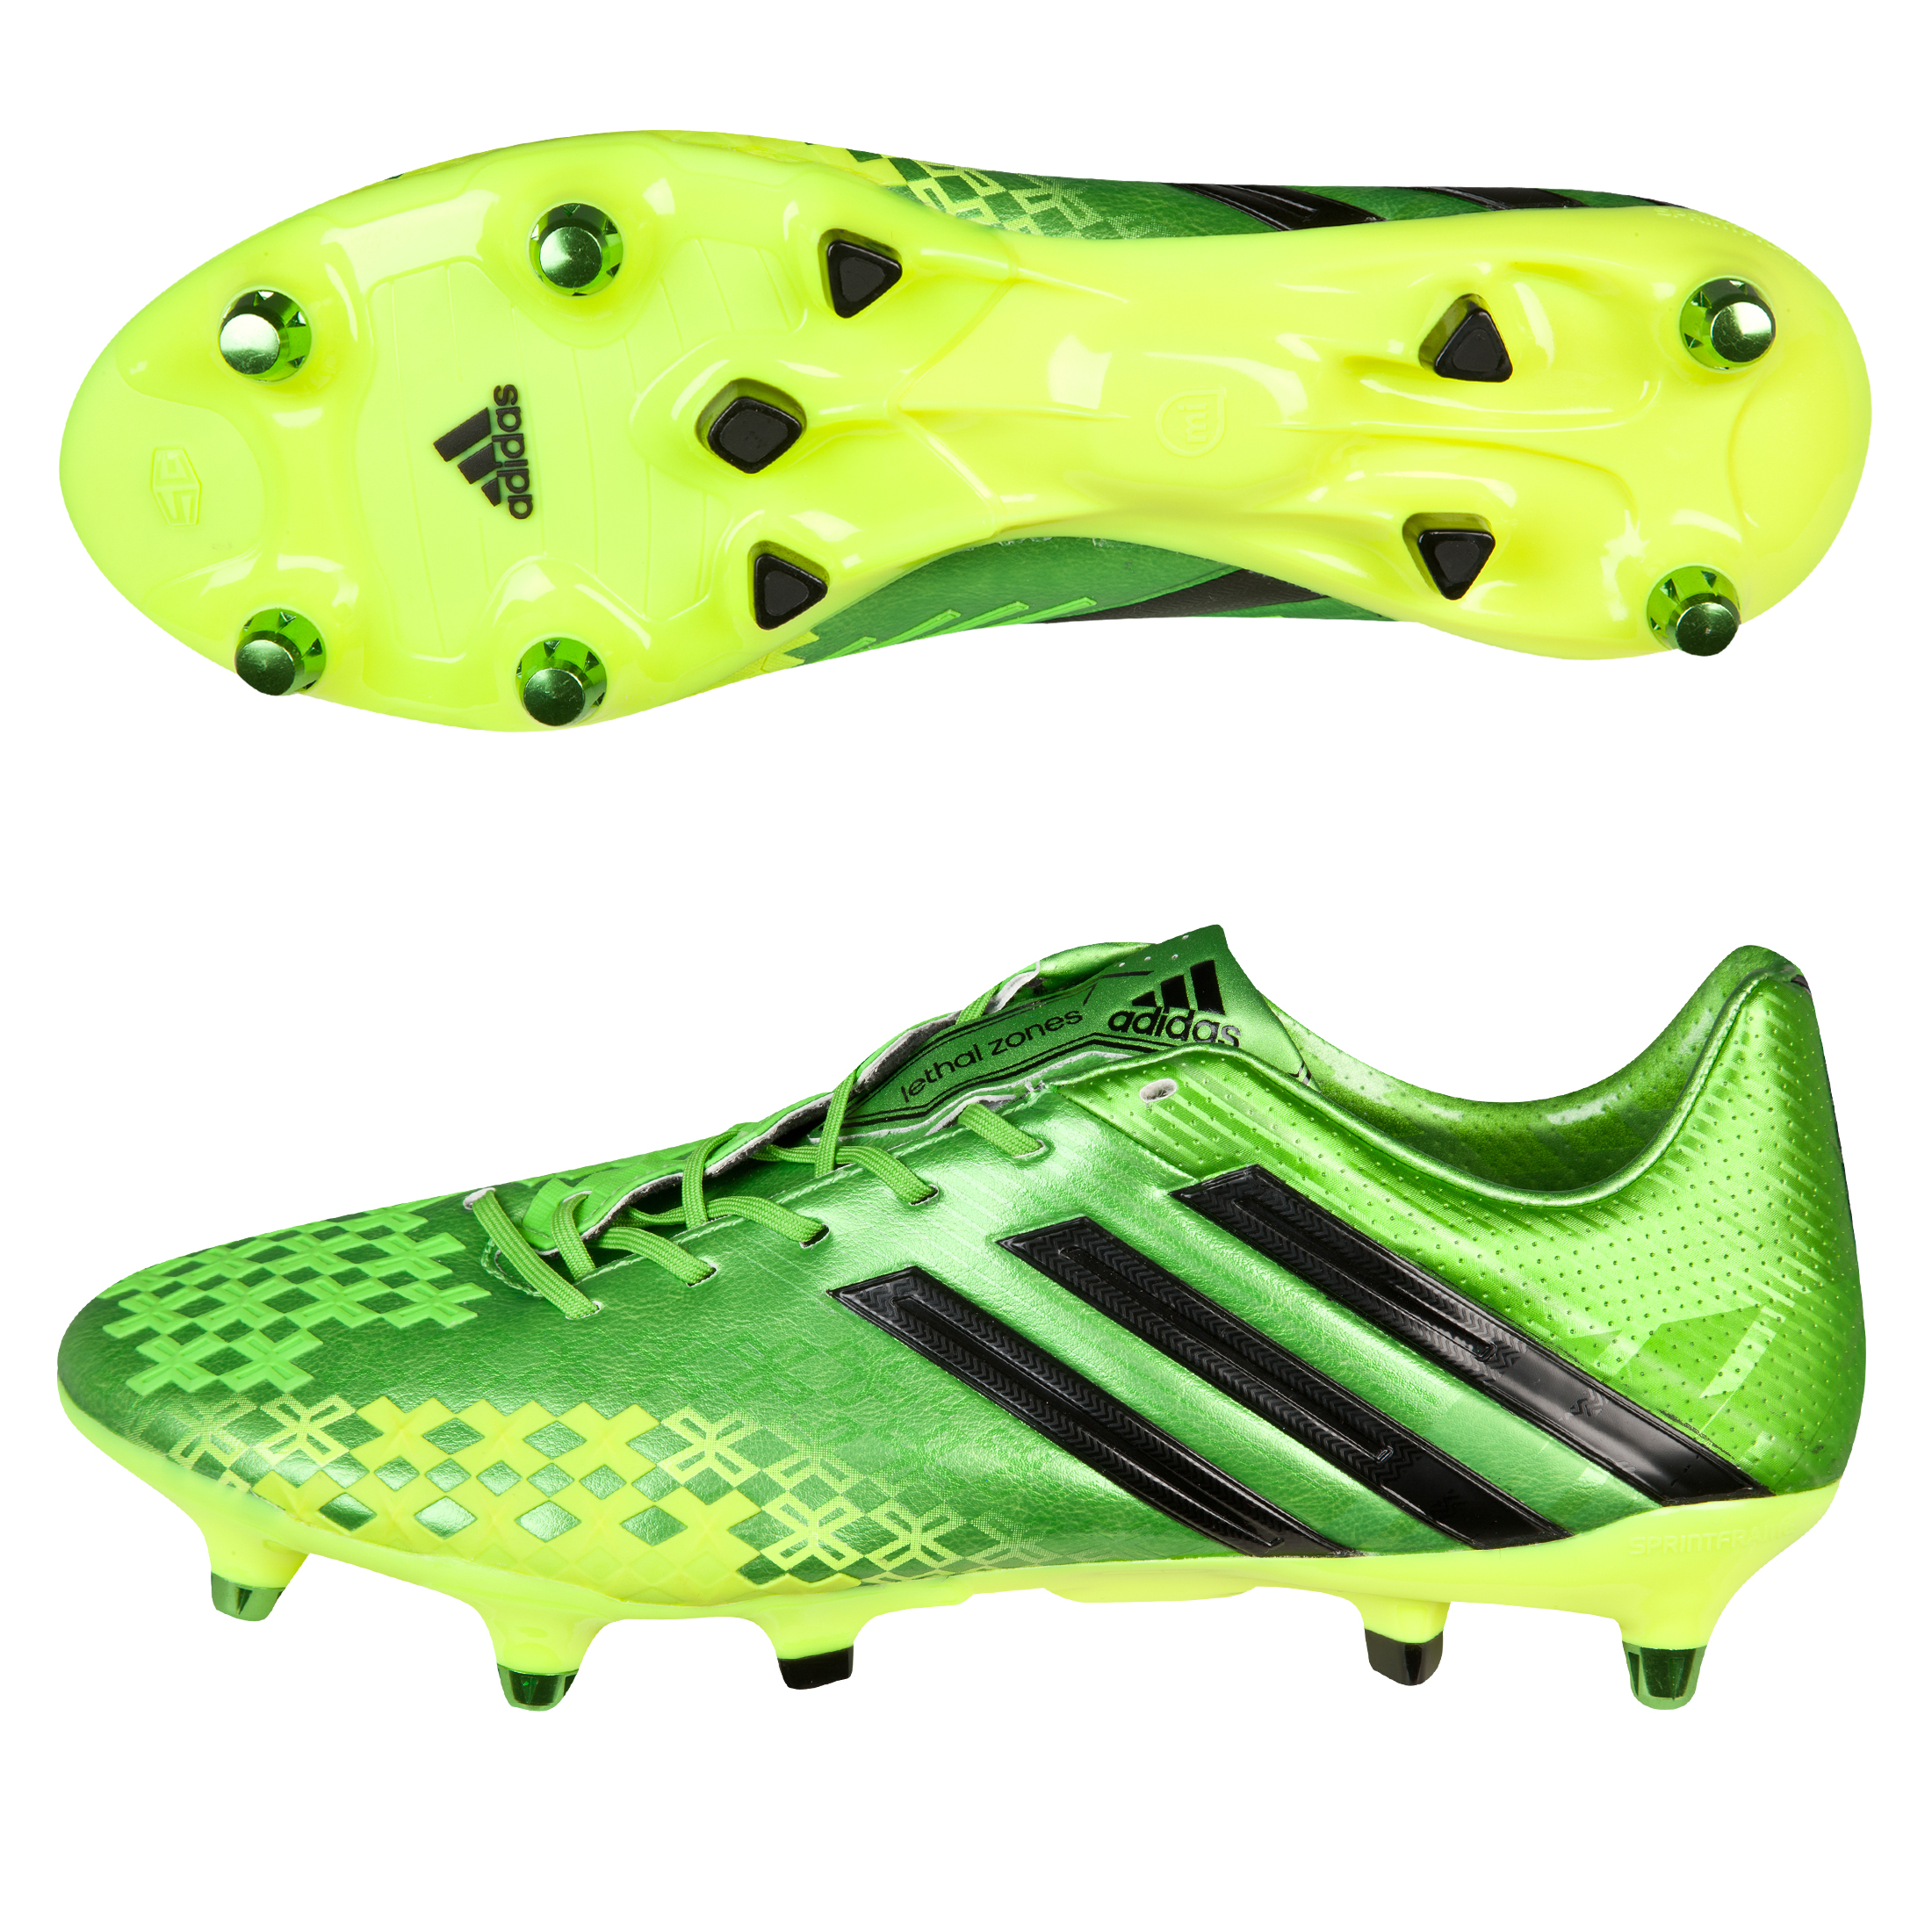 Adidas Predator LZ XTRX Soft Ground Football Boots Green